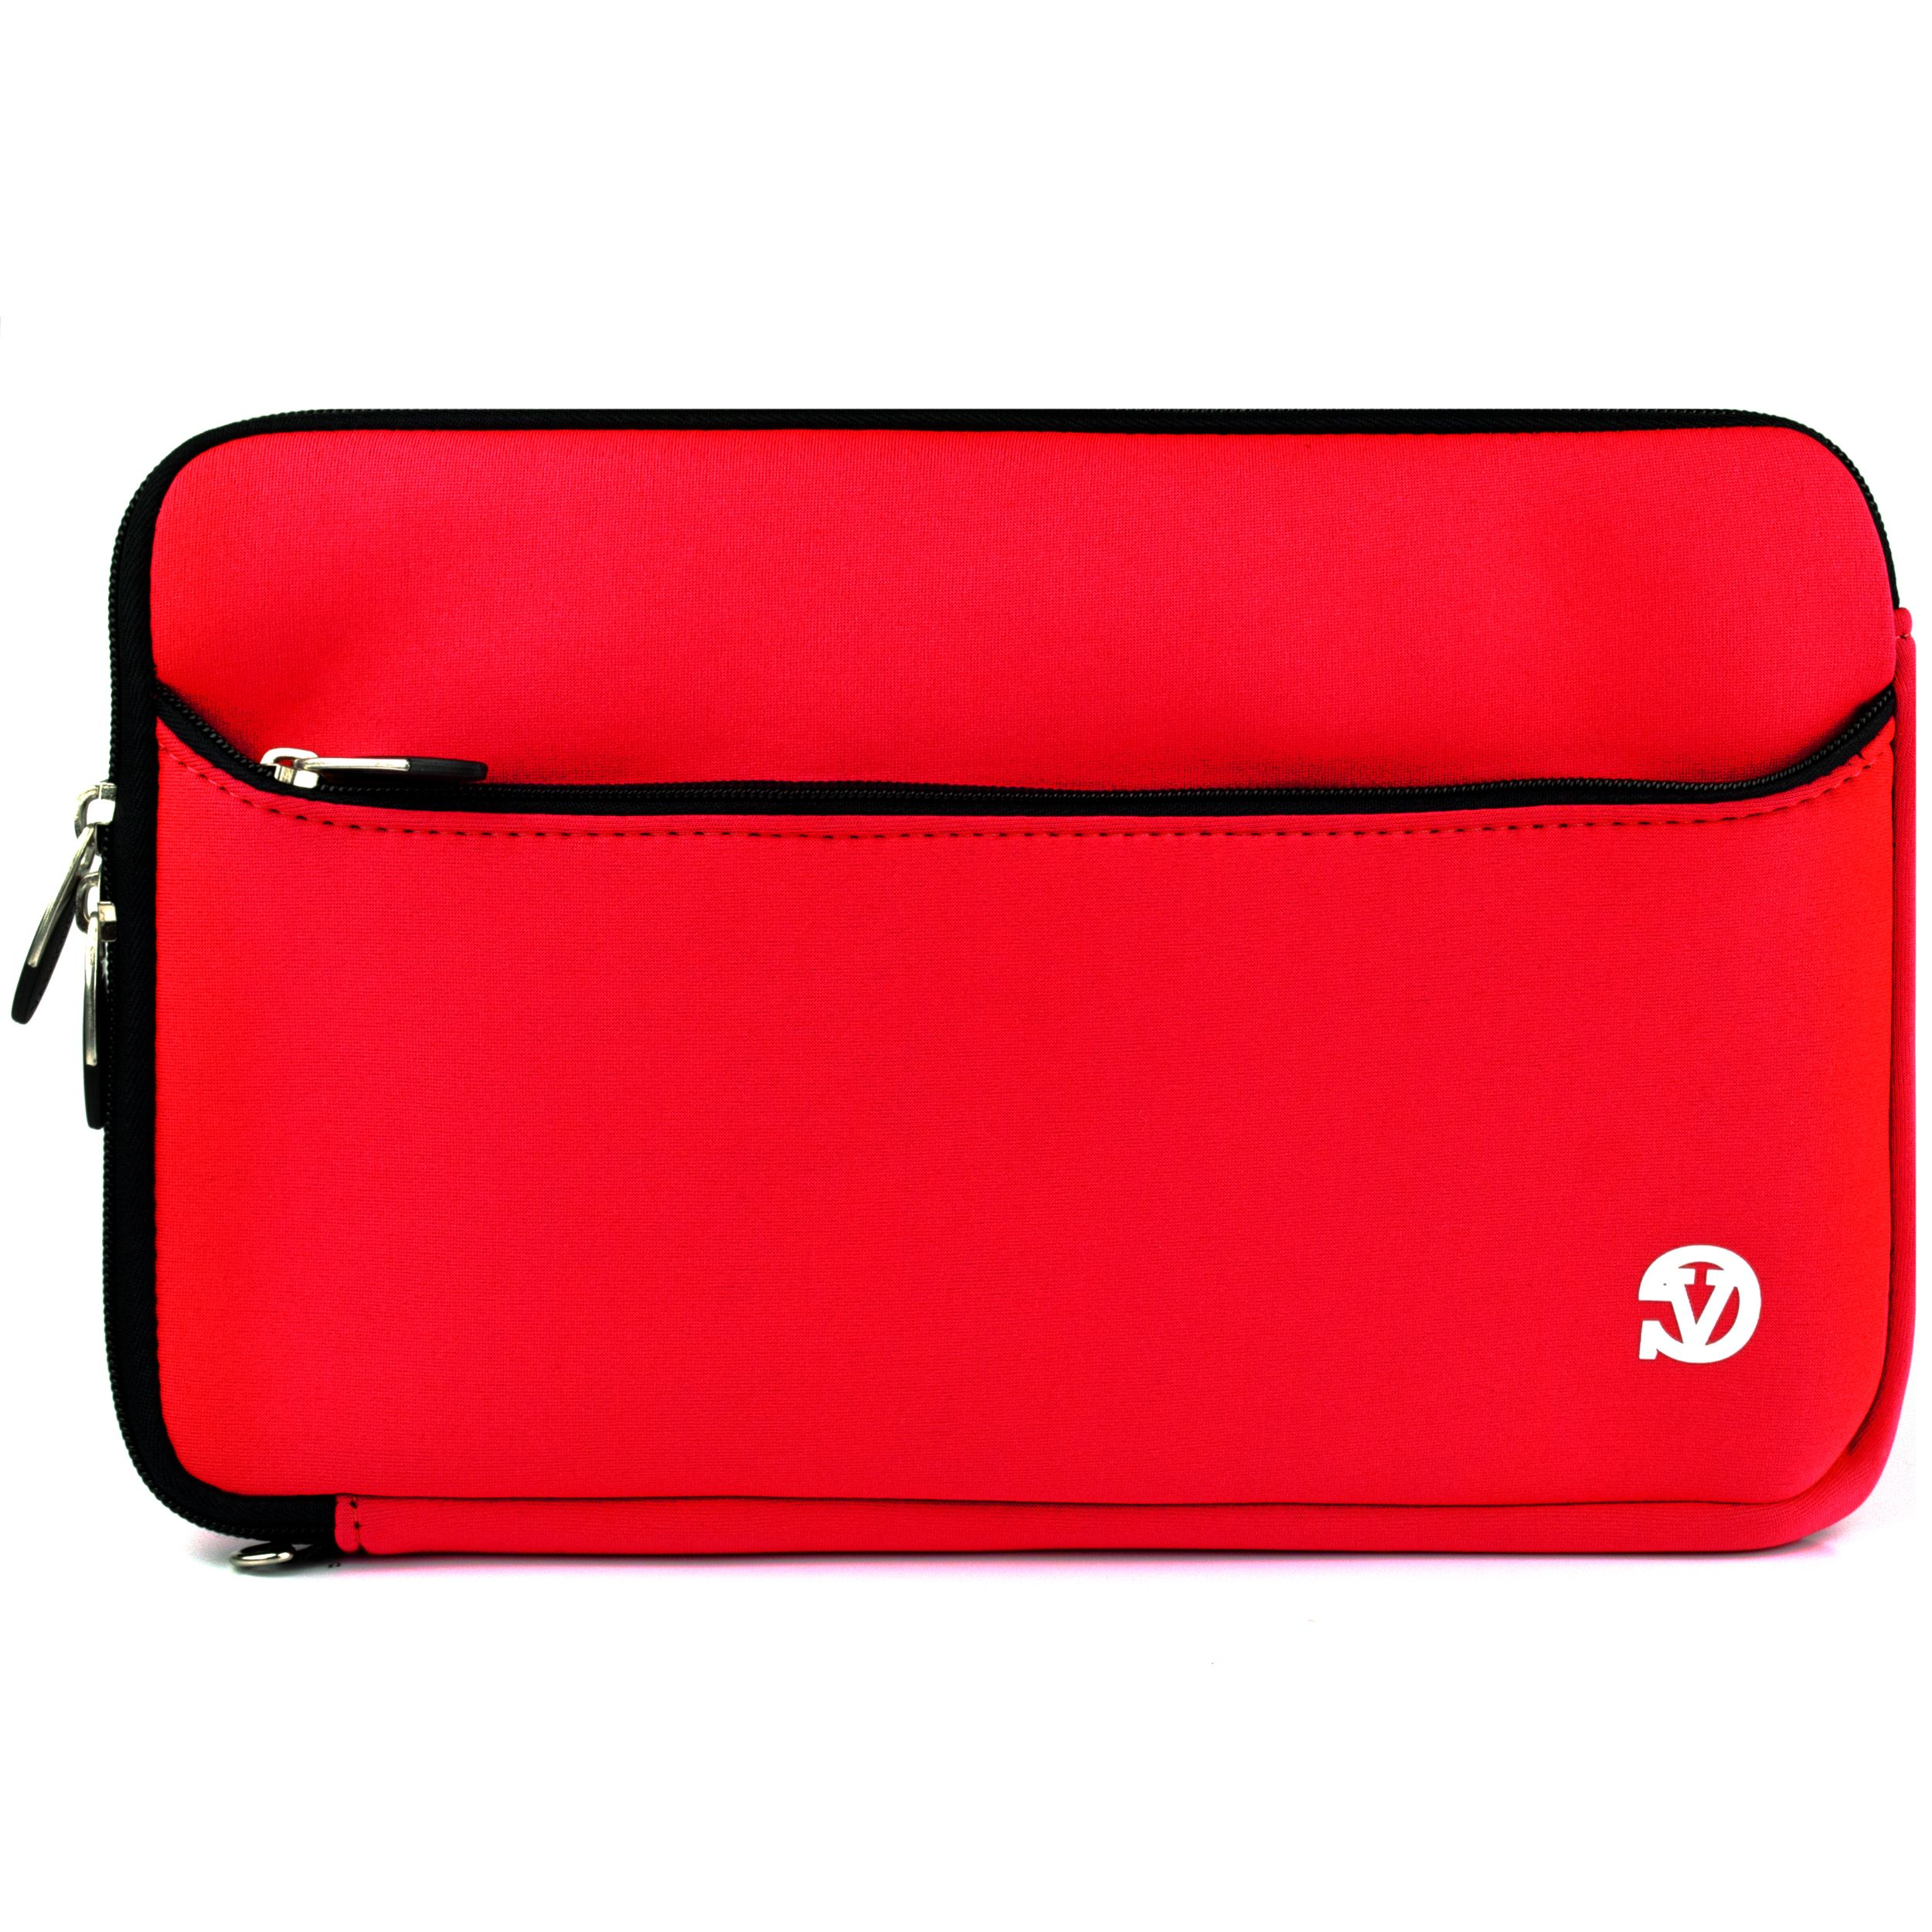 VANGODDY Neoprene Laptop / Notebook / Ultrabook Slim Compact Carrying Sleeve fits up to 12.9, 13, 13.3 inch Devices [Assorted Colors]